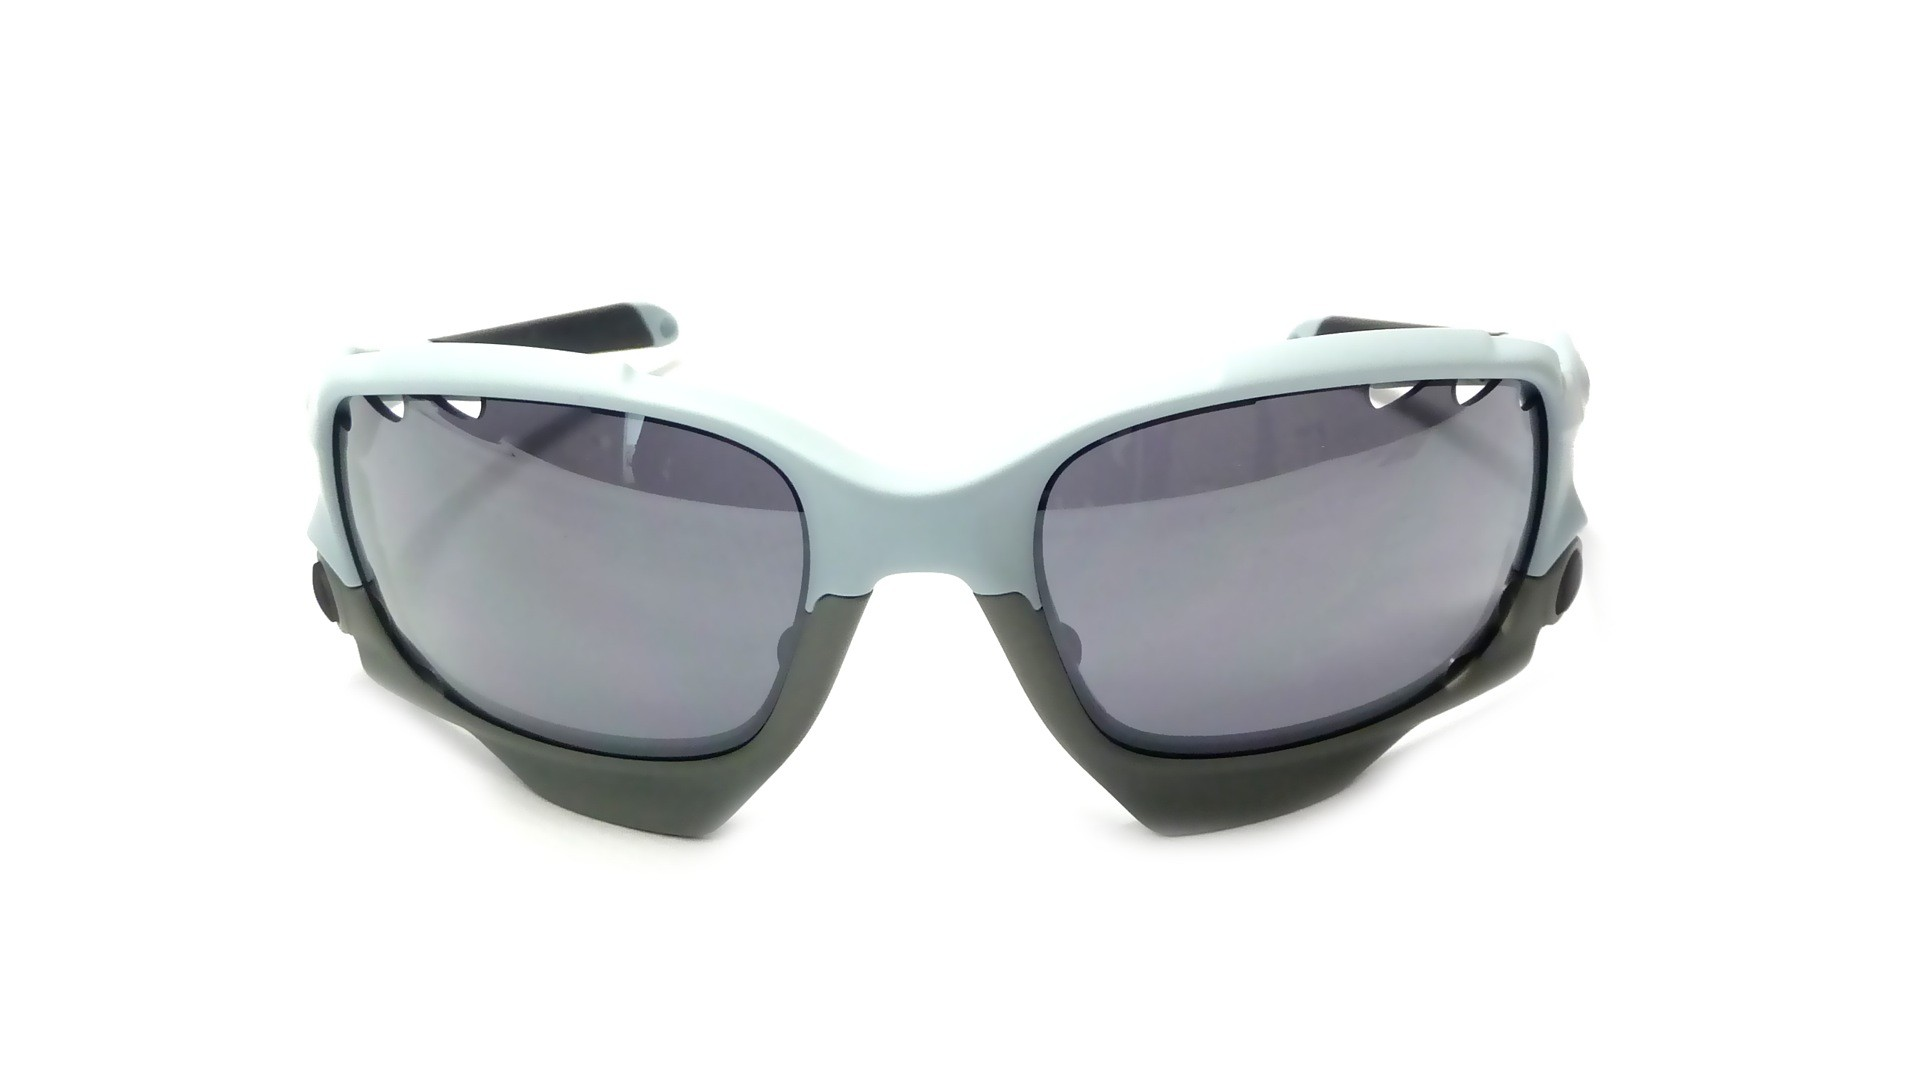 Oakley - LIMITED EDITION GP-75 DISPATCH II - Matte